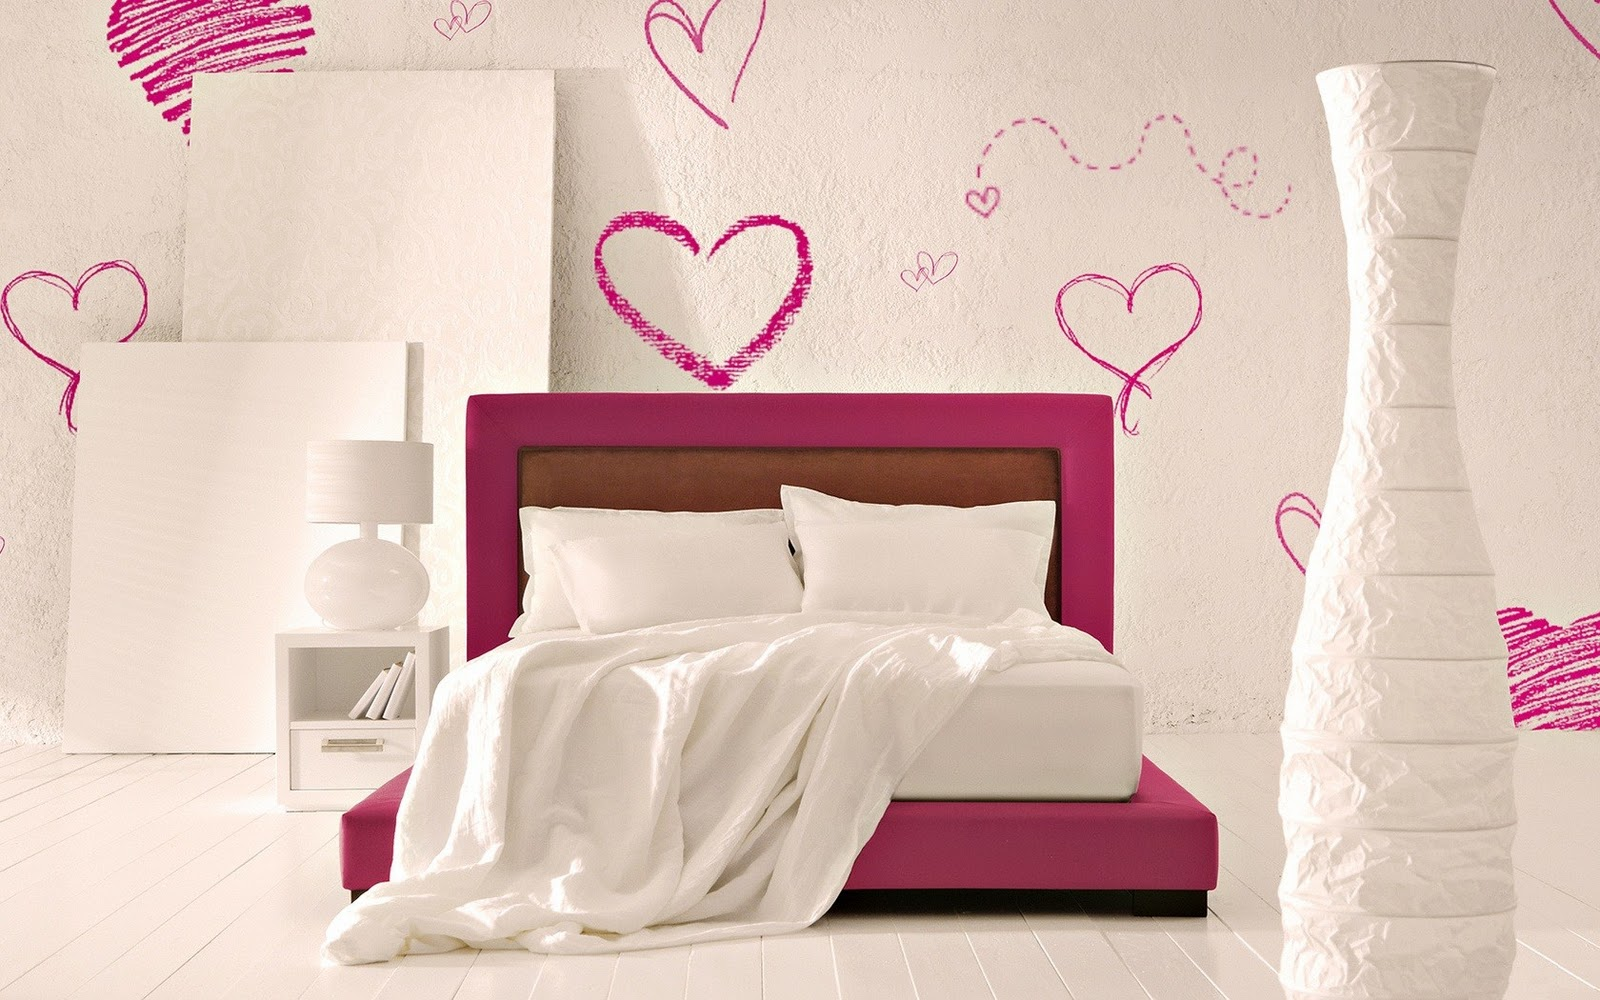 http://2.bp.blogspot.com/-_g89lo8-Efc/TsQLSGXb3DI/AAAAAAAAA24/1RToOViHlEo/s1600/Interior+Bed+Hearts+Style+HD+Wallpaper+-+LoveWallpapers4u.Blogspot.Com.jpg